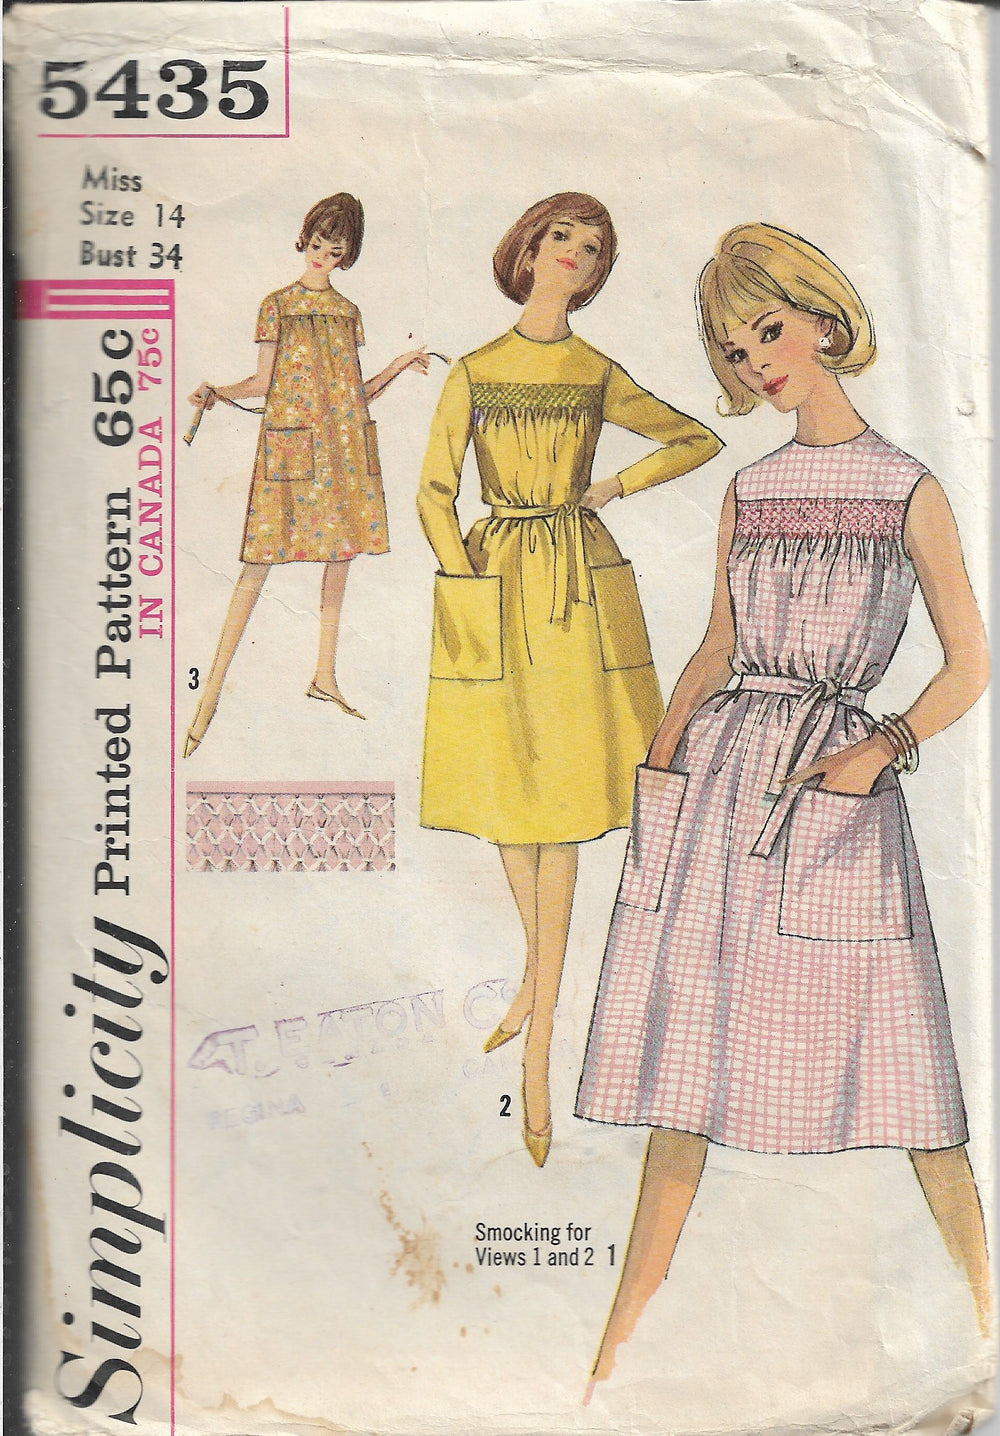 Simplicity 5435 Vintage Sewing Pattern Ladies One Piece Dress - VintageStitching - Vintage Sewing Patterns